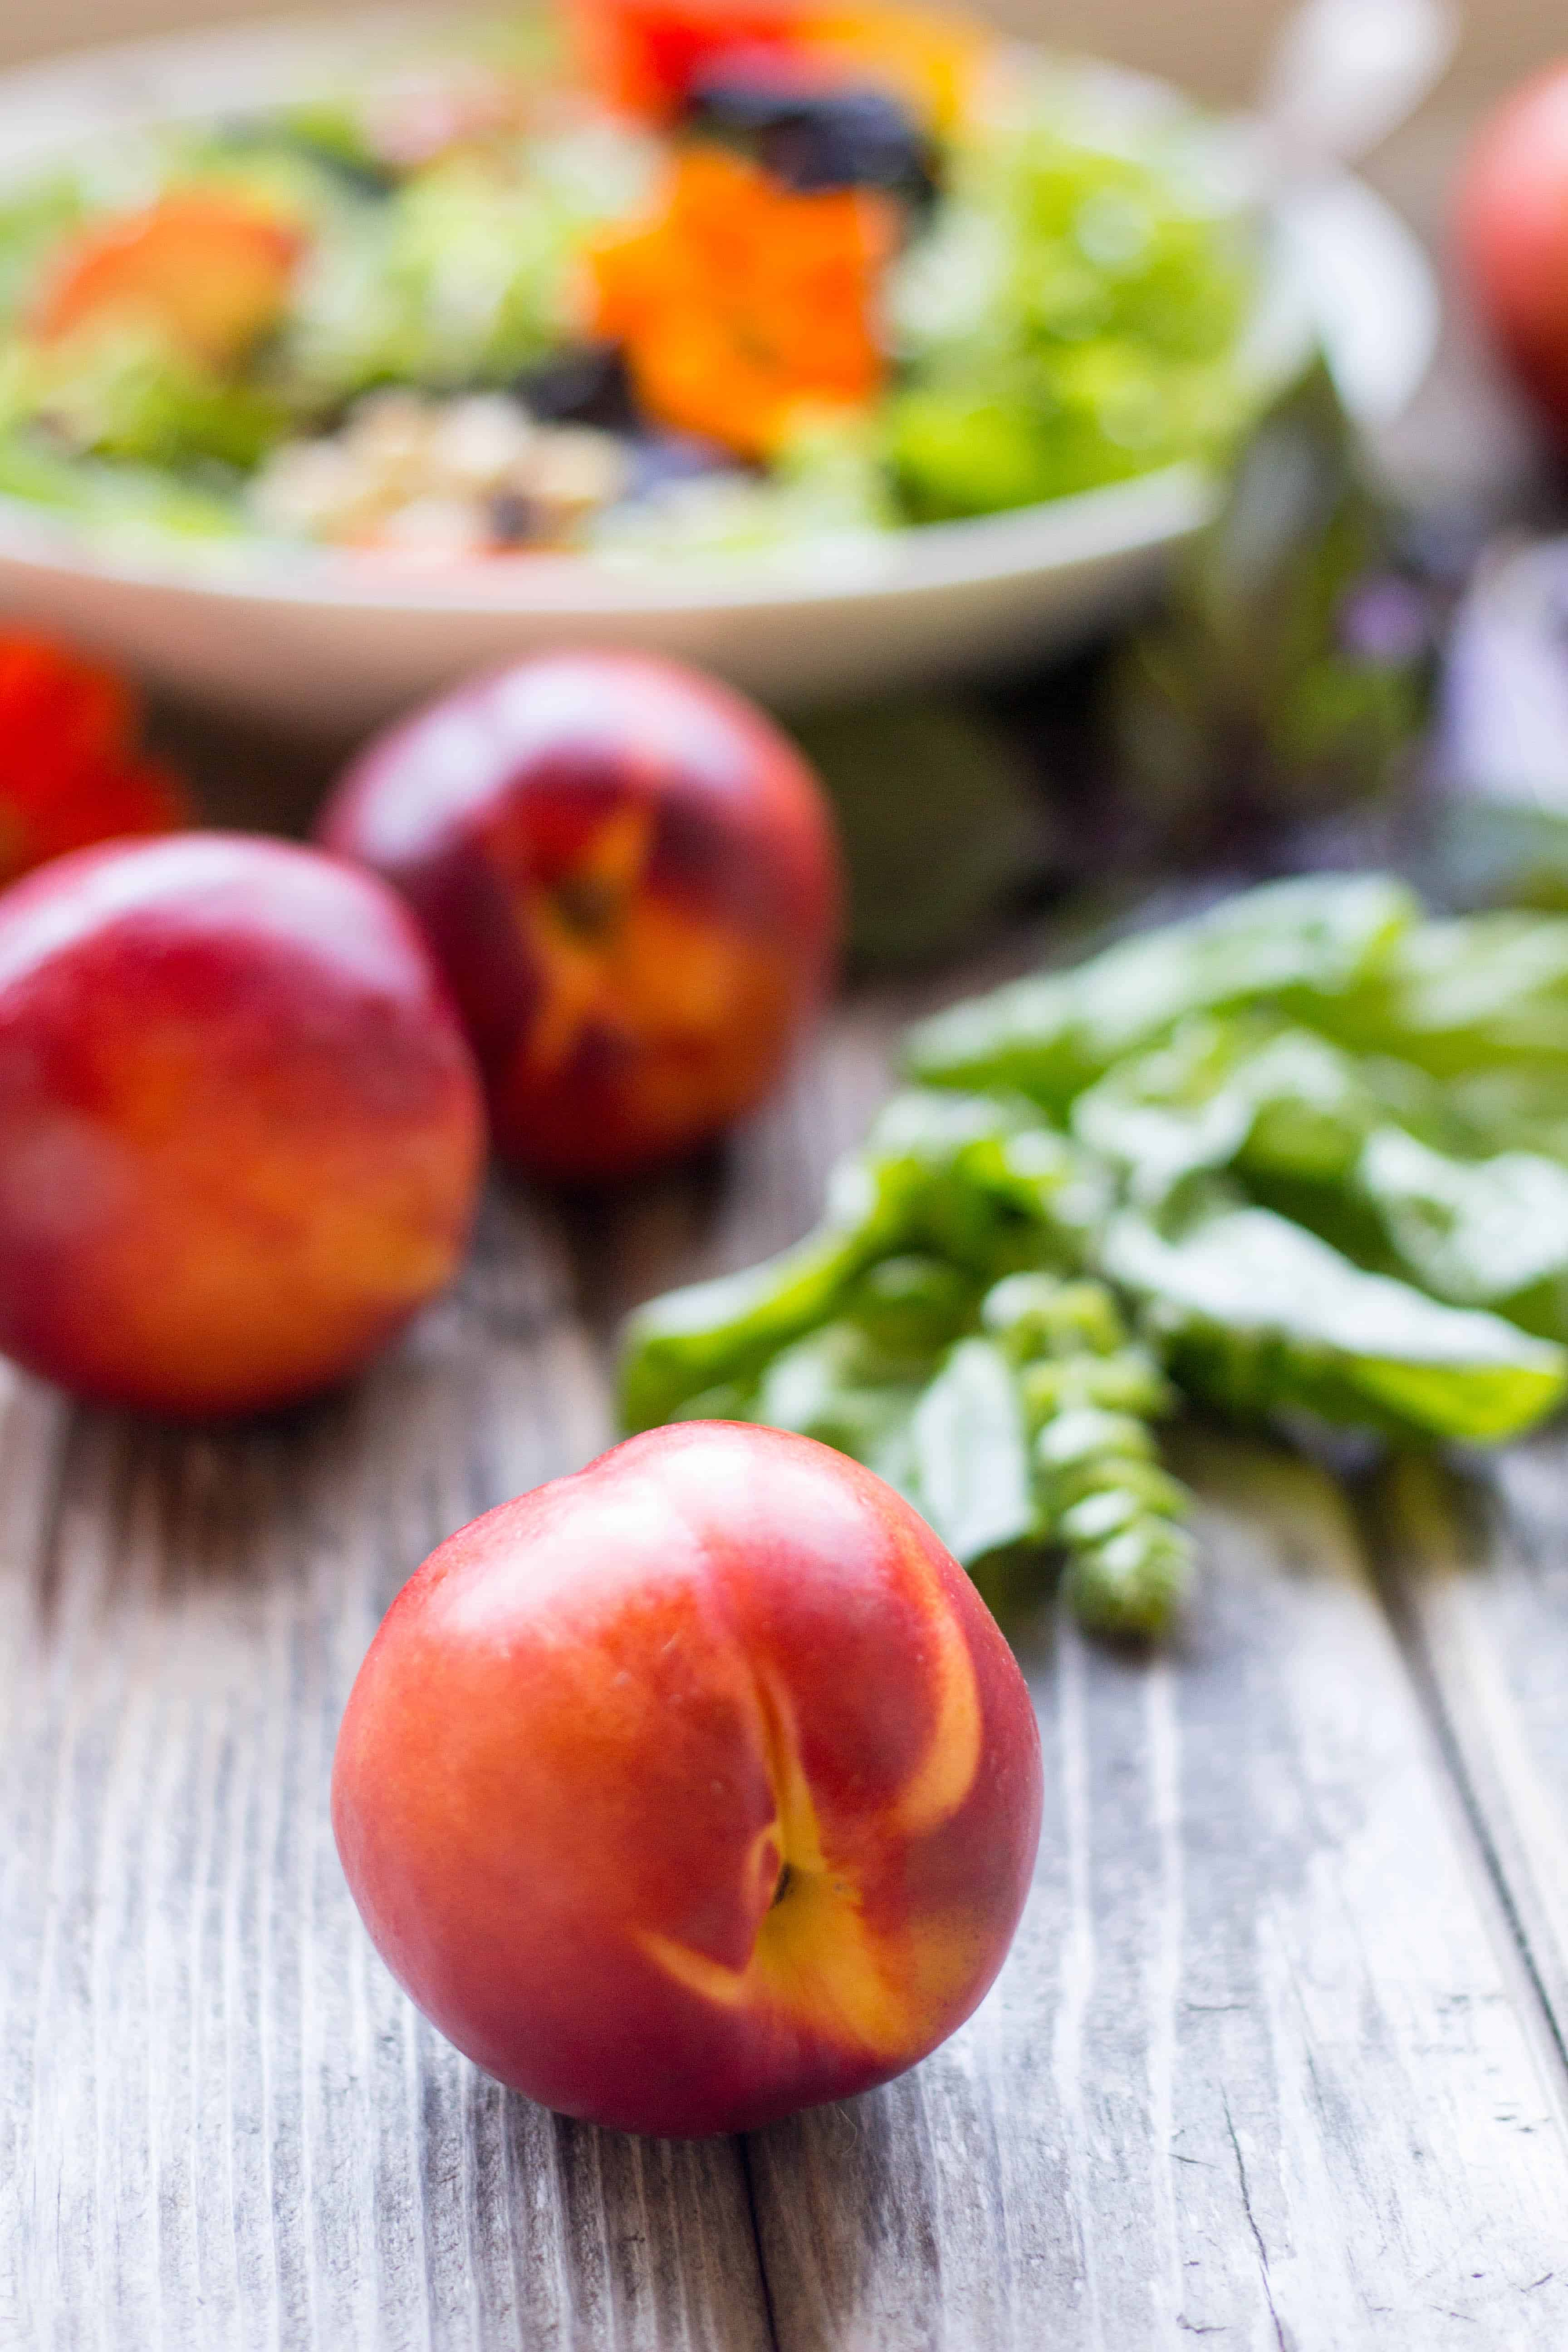 Fresh nectarines on a wood table.